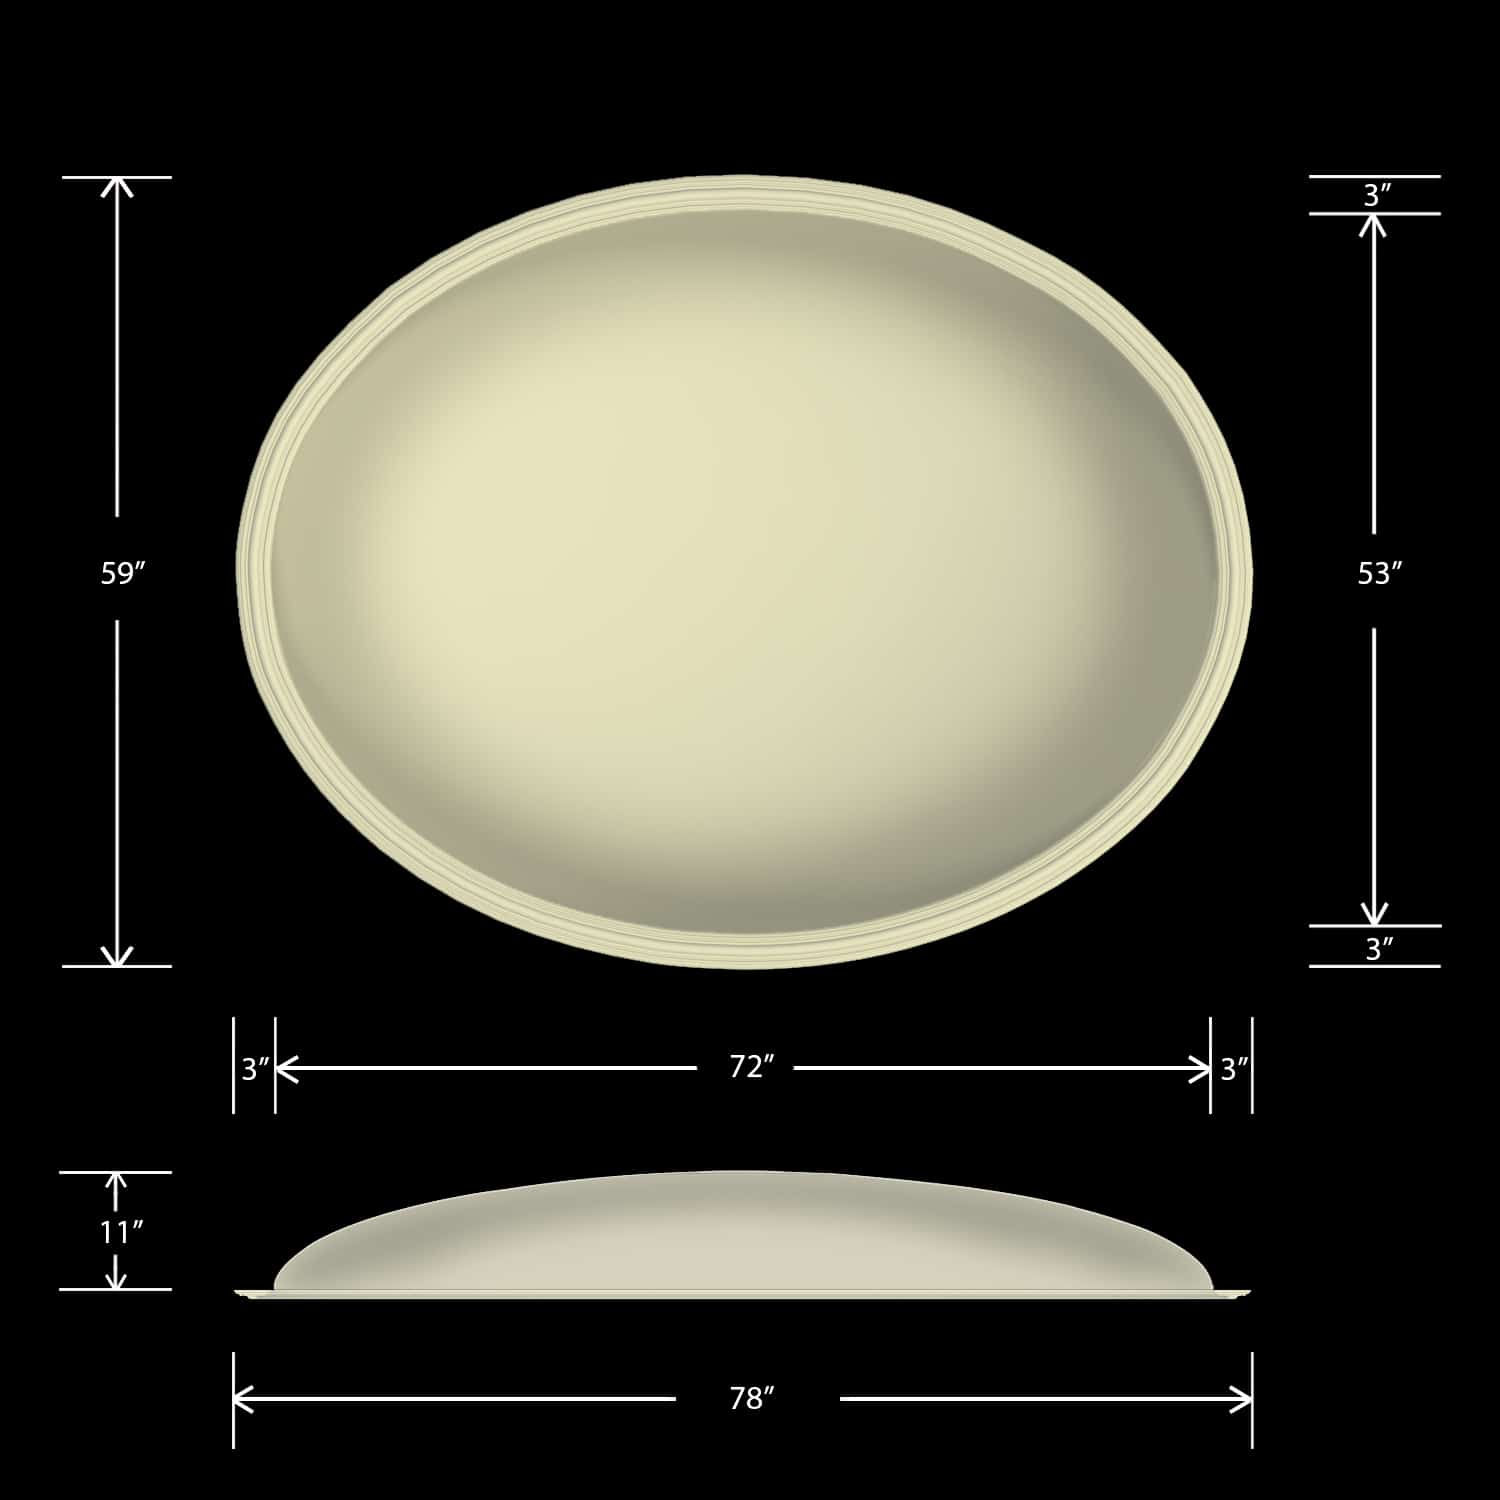 Ceiling Dome - Elliptical 59X78 - Classic Smooth